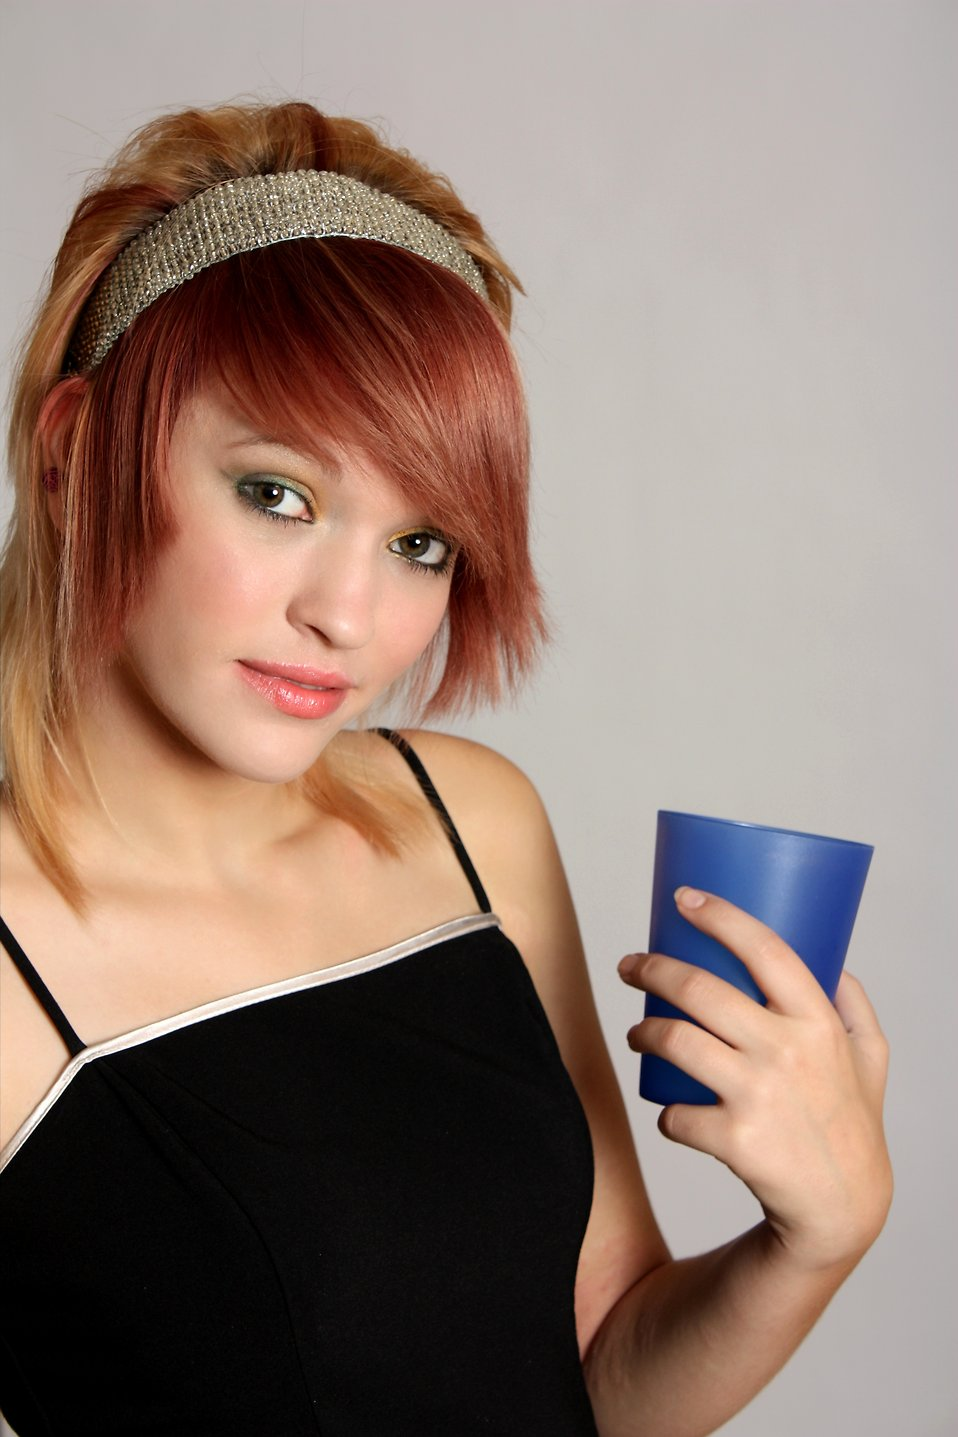 A beautiful girl holding a plastic cup : Free Stock Photo